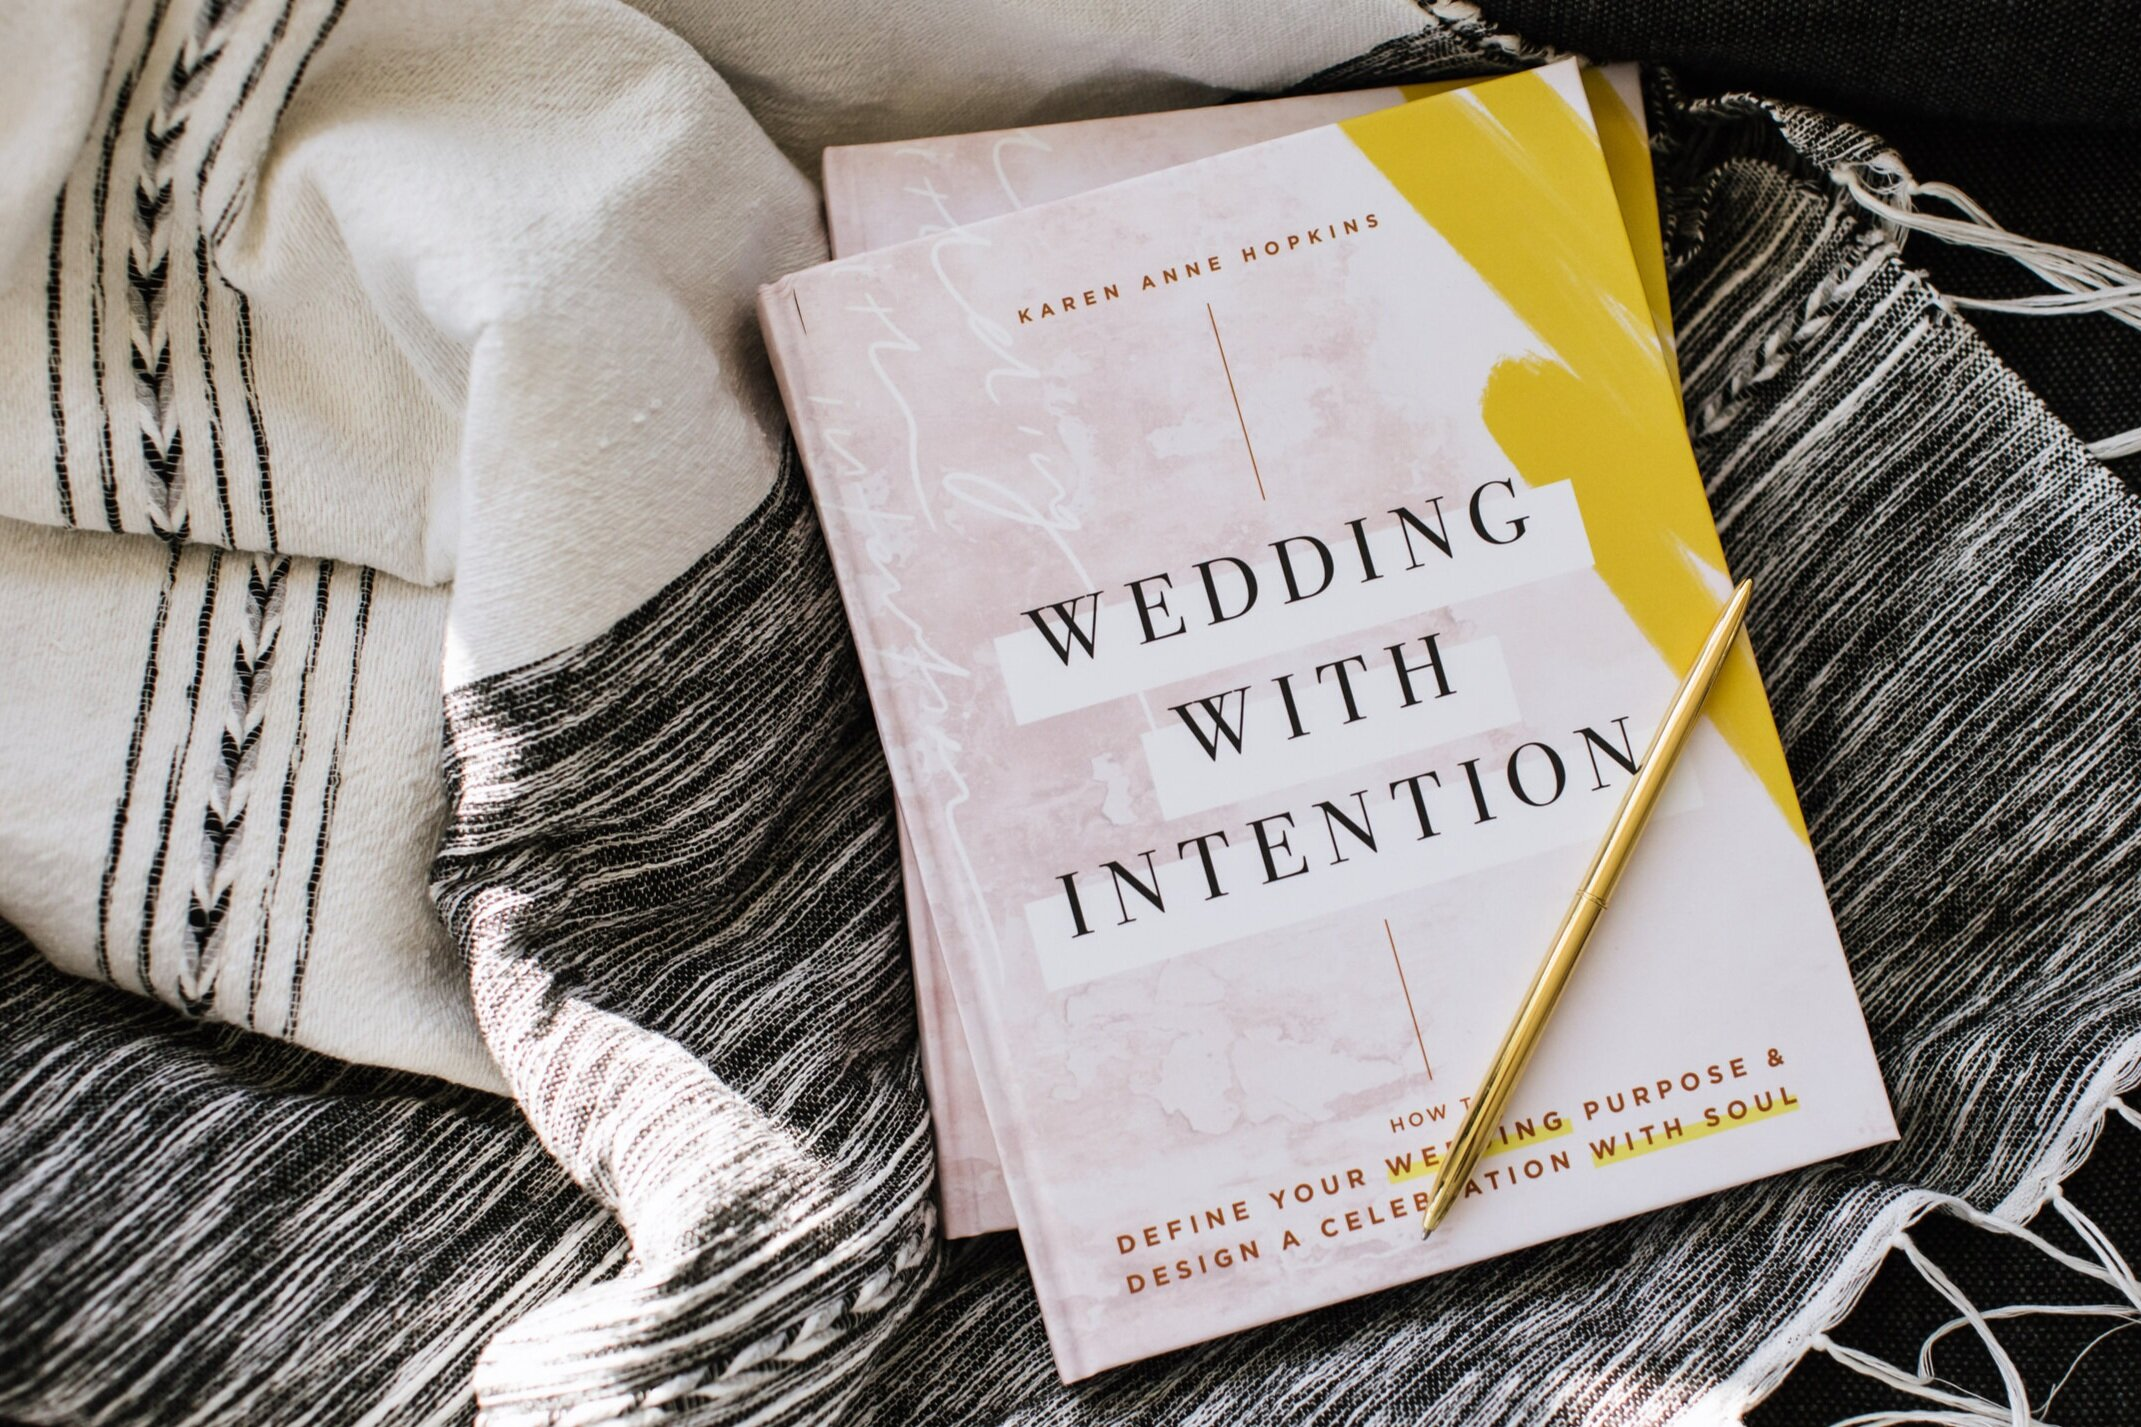 wedding planning book - wedding with intention